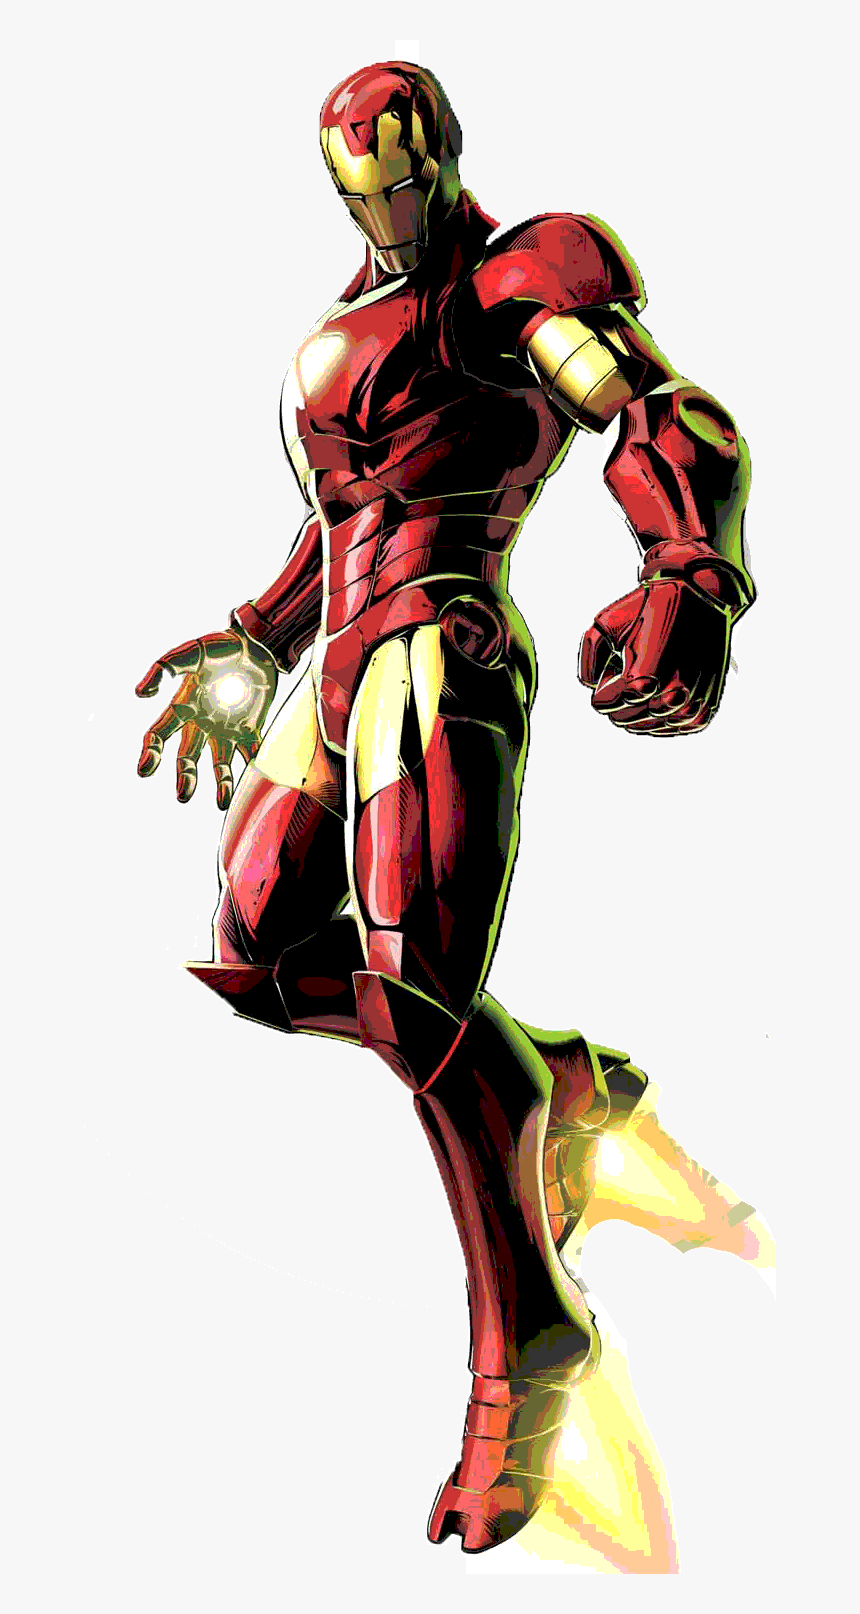 Weapons And Paraphernalia - Marvel Vs Capcom 3 Iron, HD Png Download, Free Download